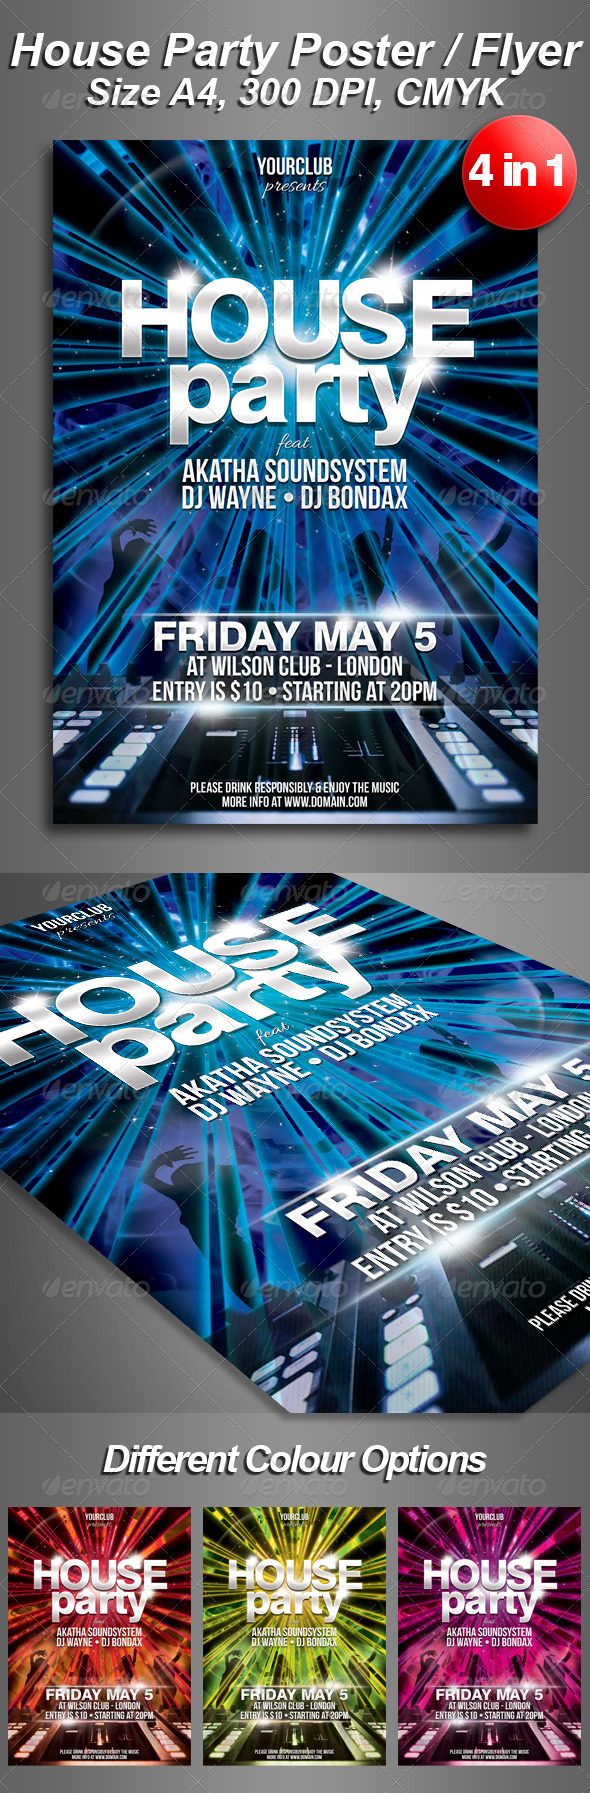 GraphicRiver A4 House Party Club Flyer 4 in 1 4434986